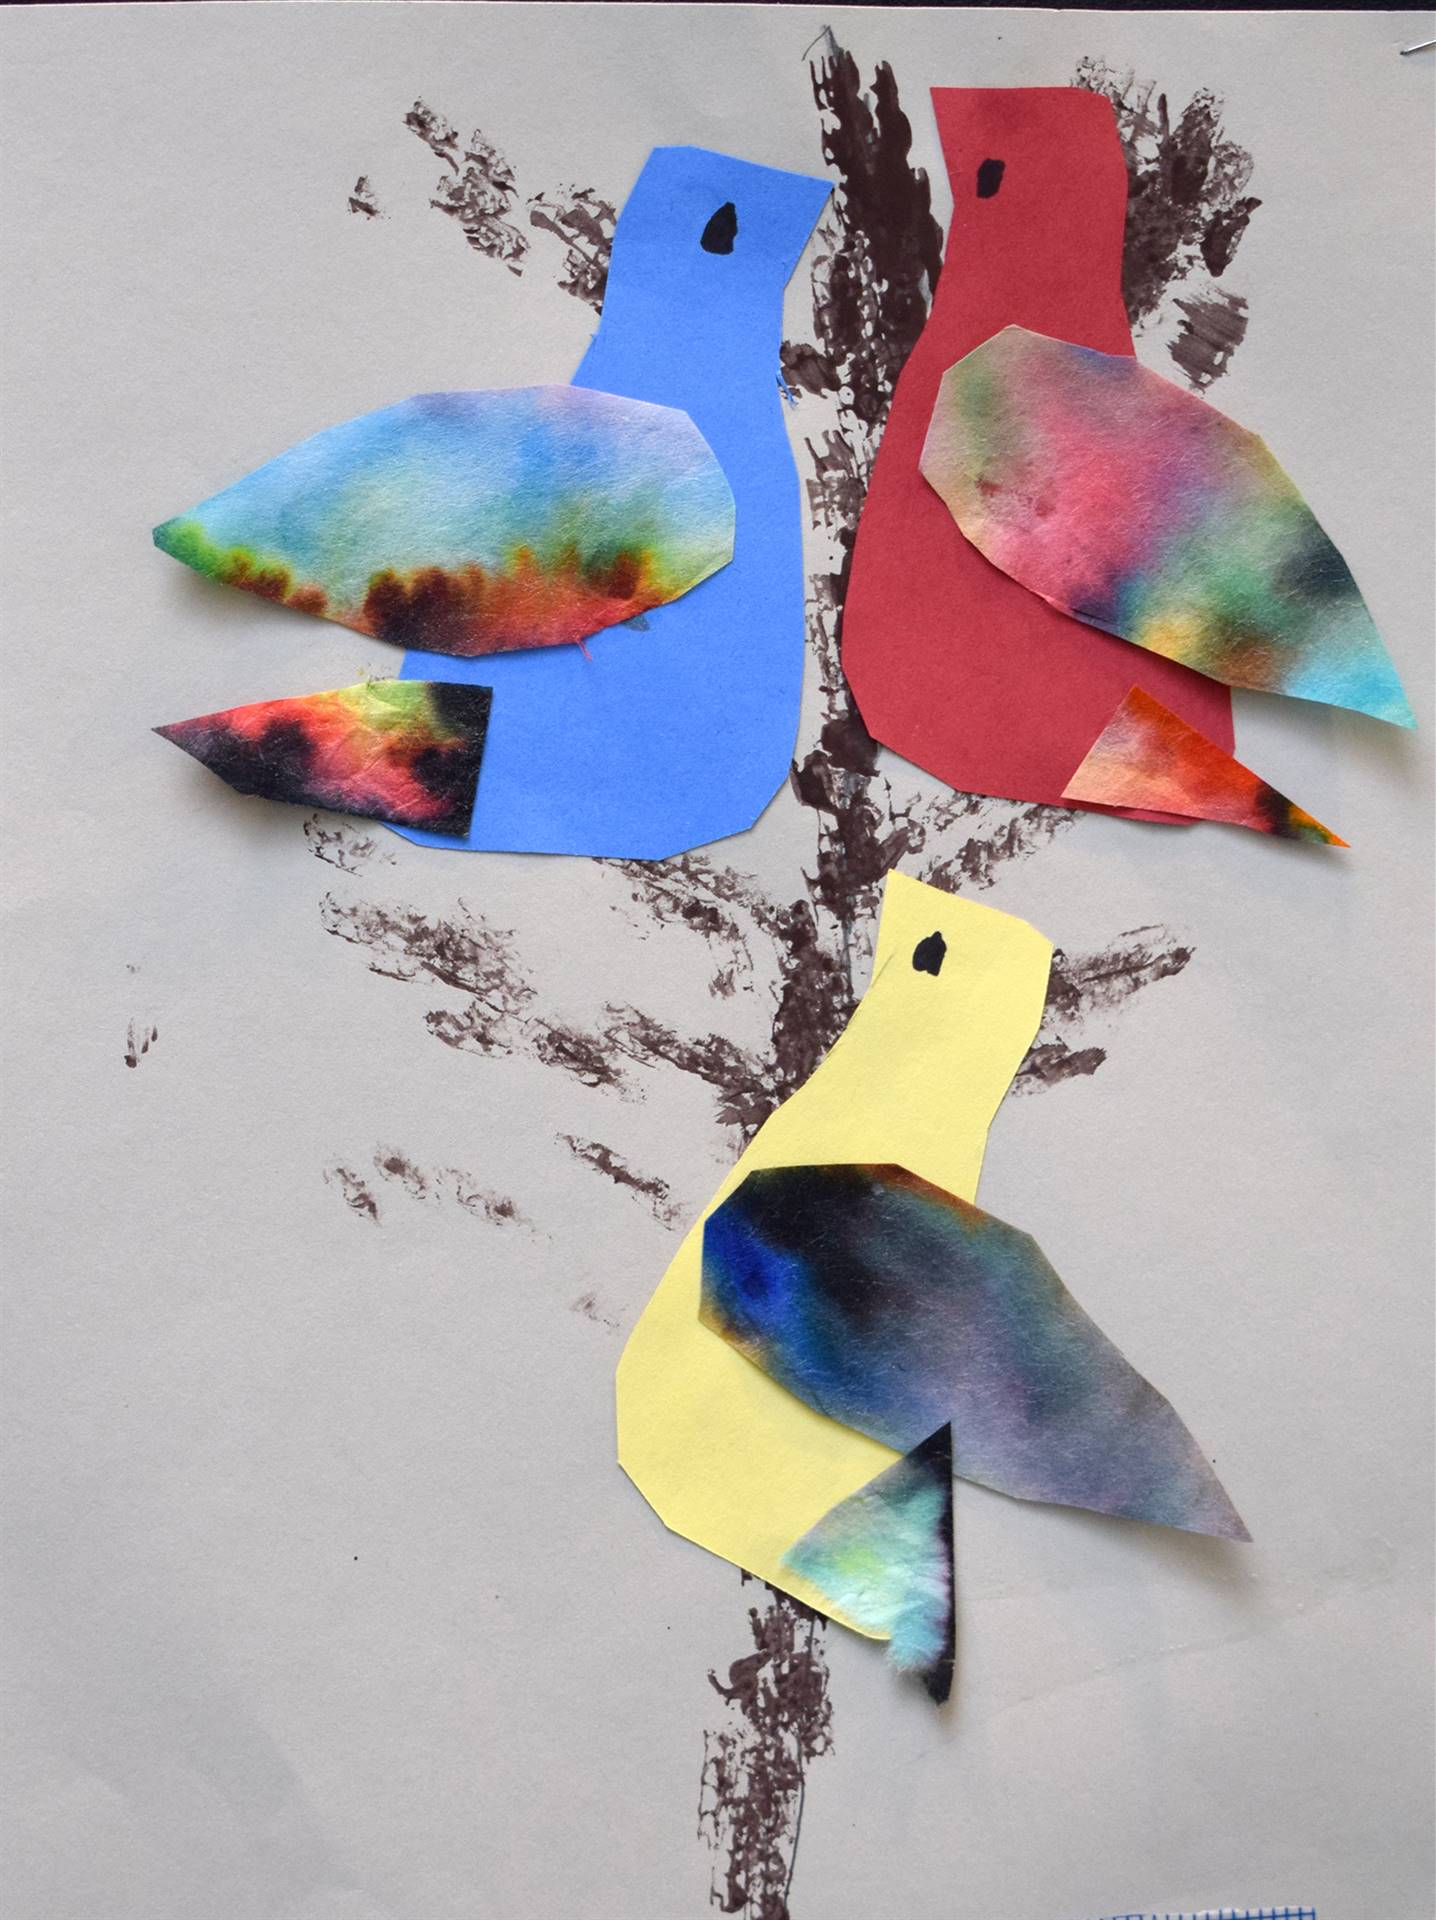 Three multi-colored birds on a black branch... One is yellow, one is blue and one is red. All have t